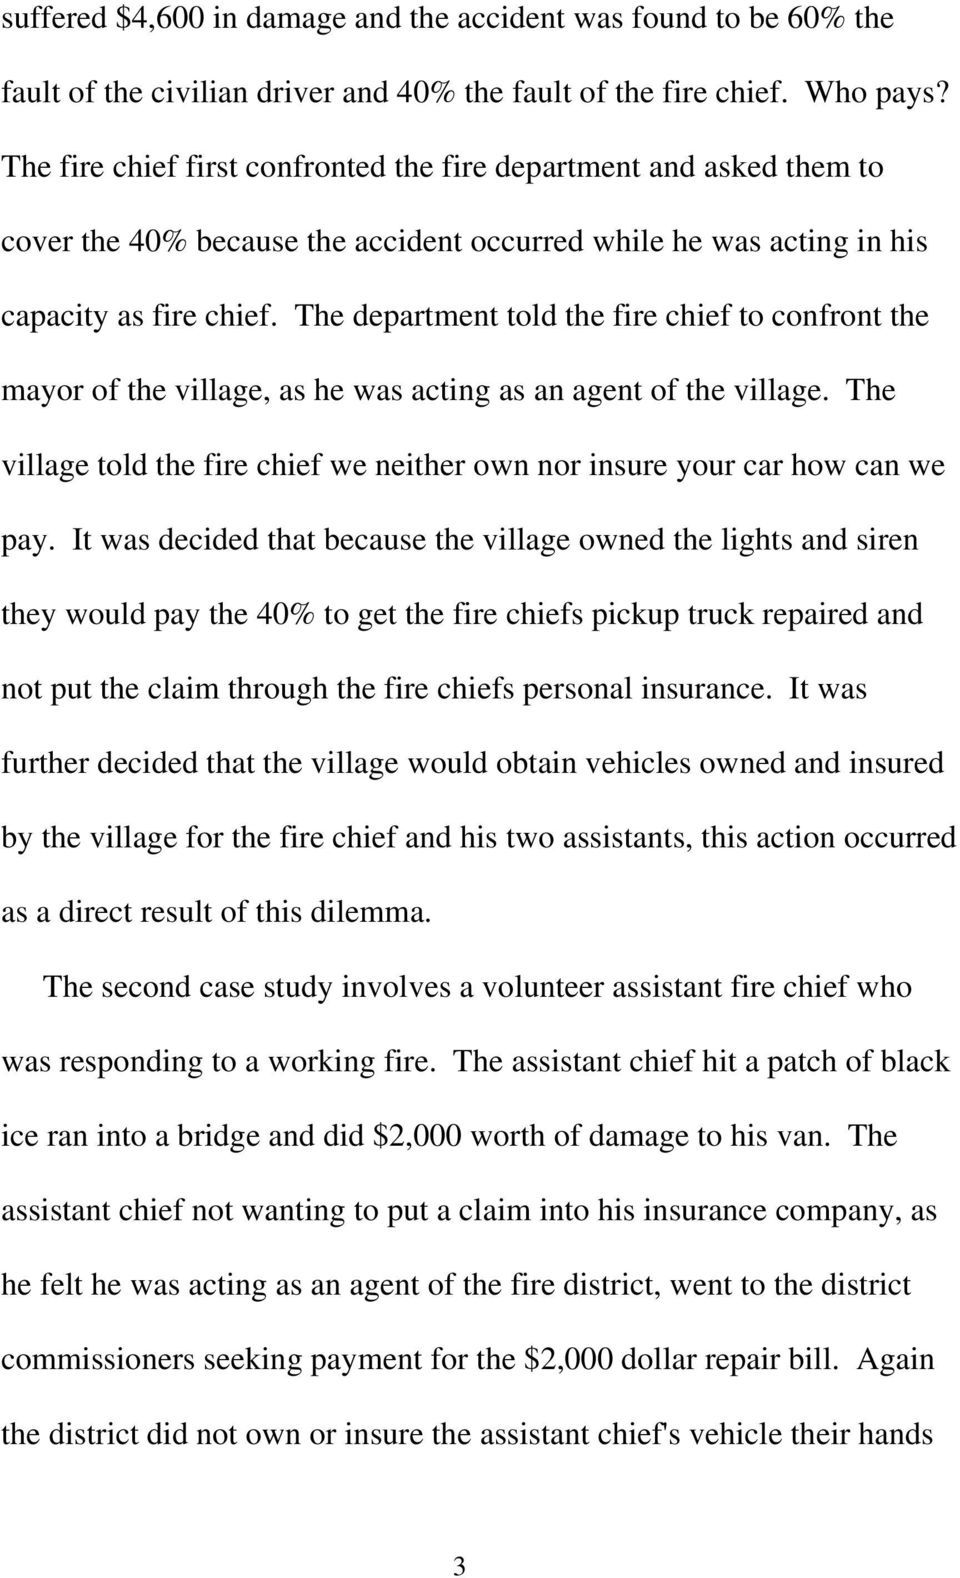 The department told the fire chief to confront the mayor of the village, as he was acting as an agent of the village. The village told the fire chief we neither own nor insure your car how can we pay.